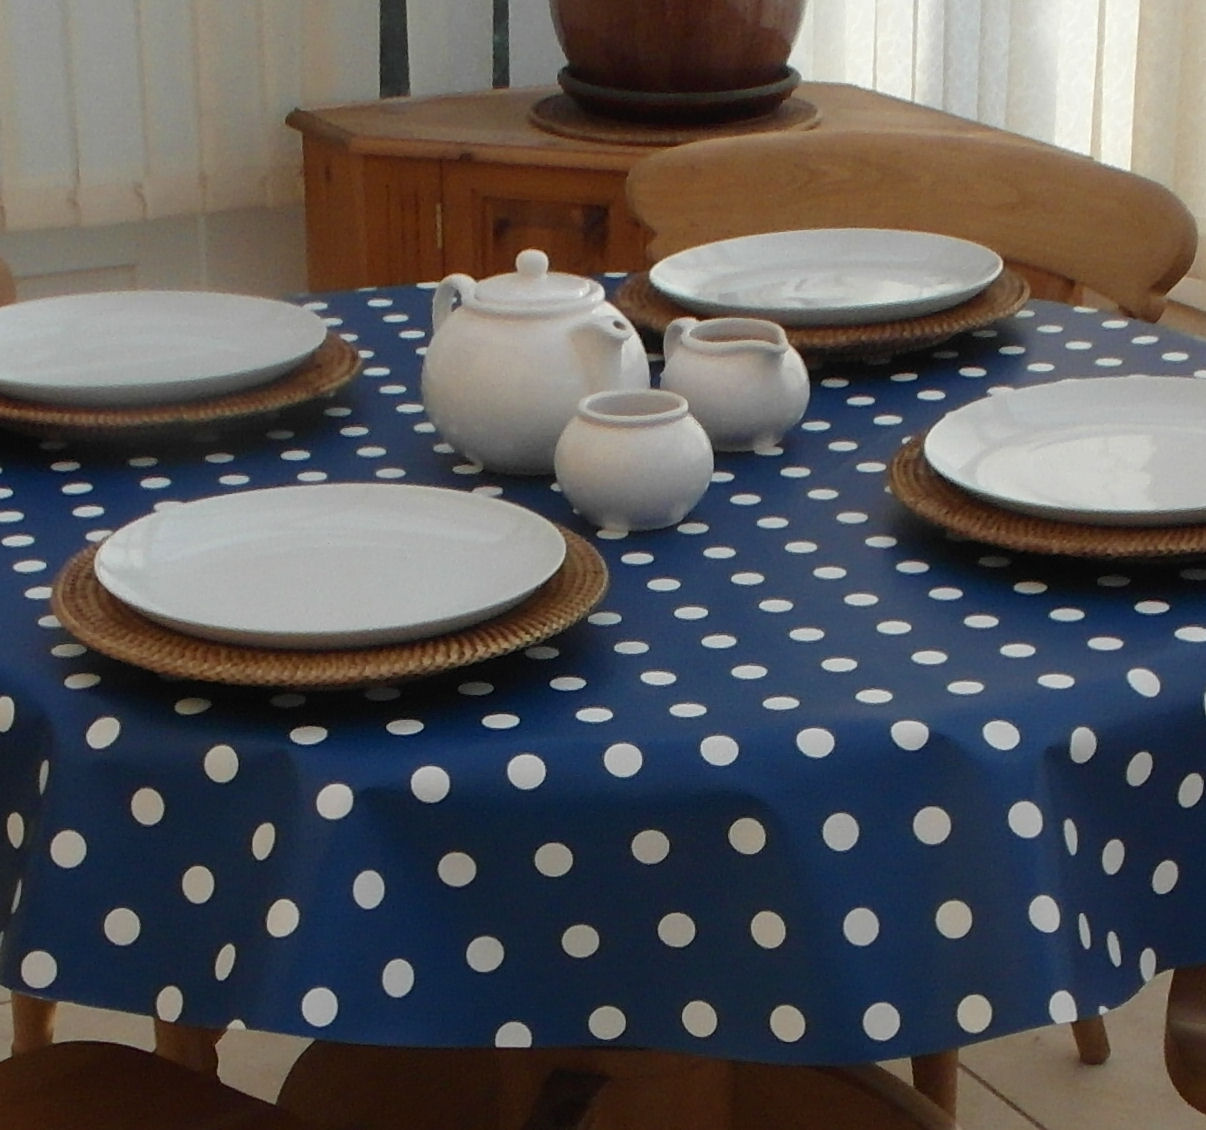 Round Wipe Clean Tablecloth Blue Polka Dot The